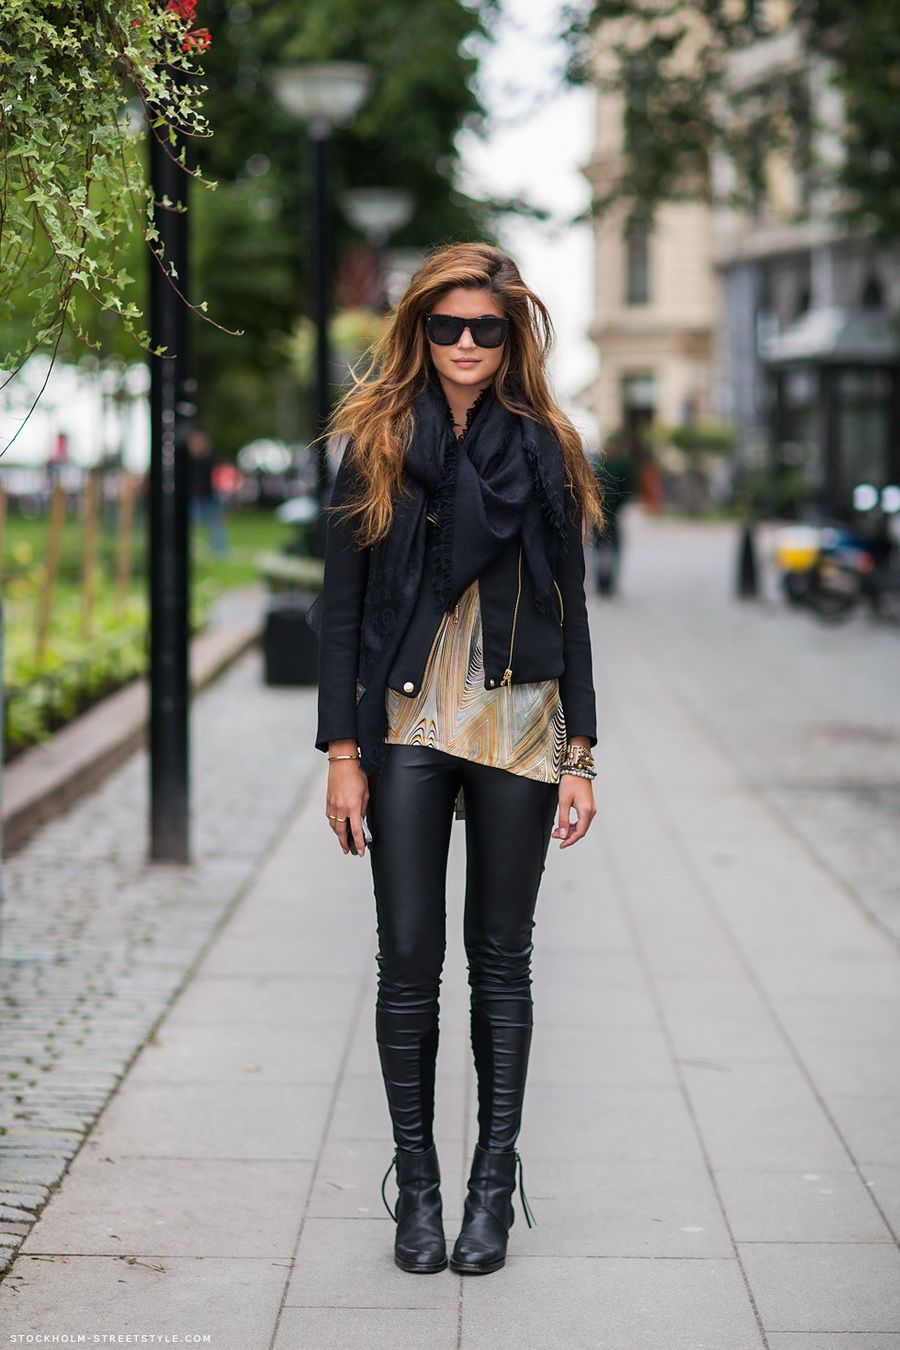 How To Wear Leggings And Not Look Like You're Going To The Gym? - fashionsy.com